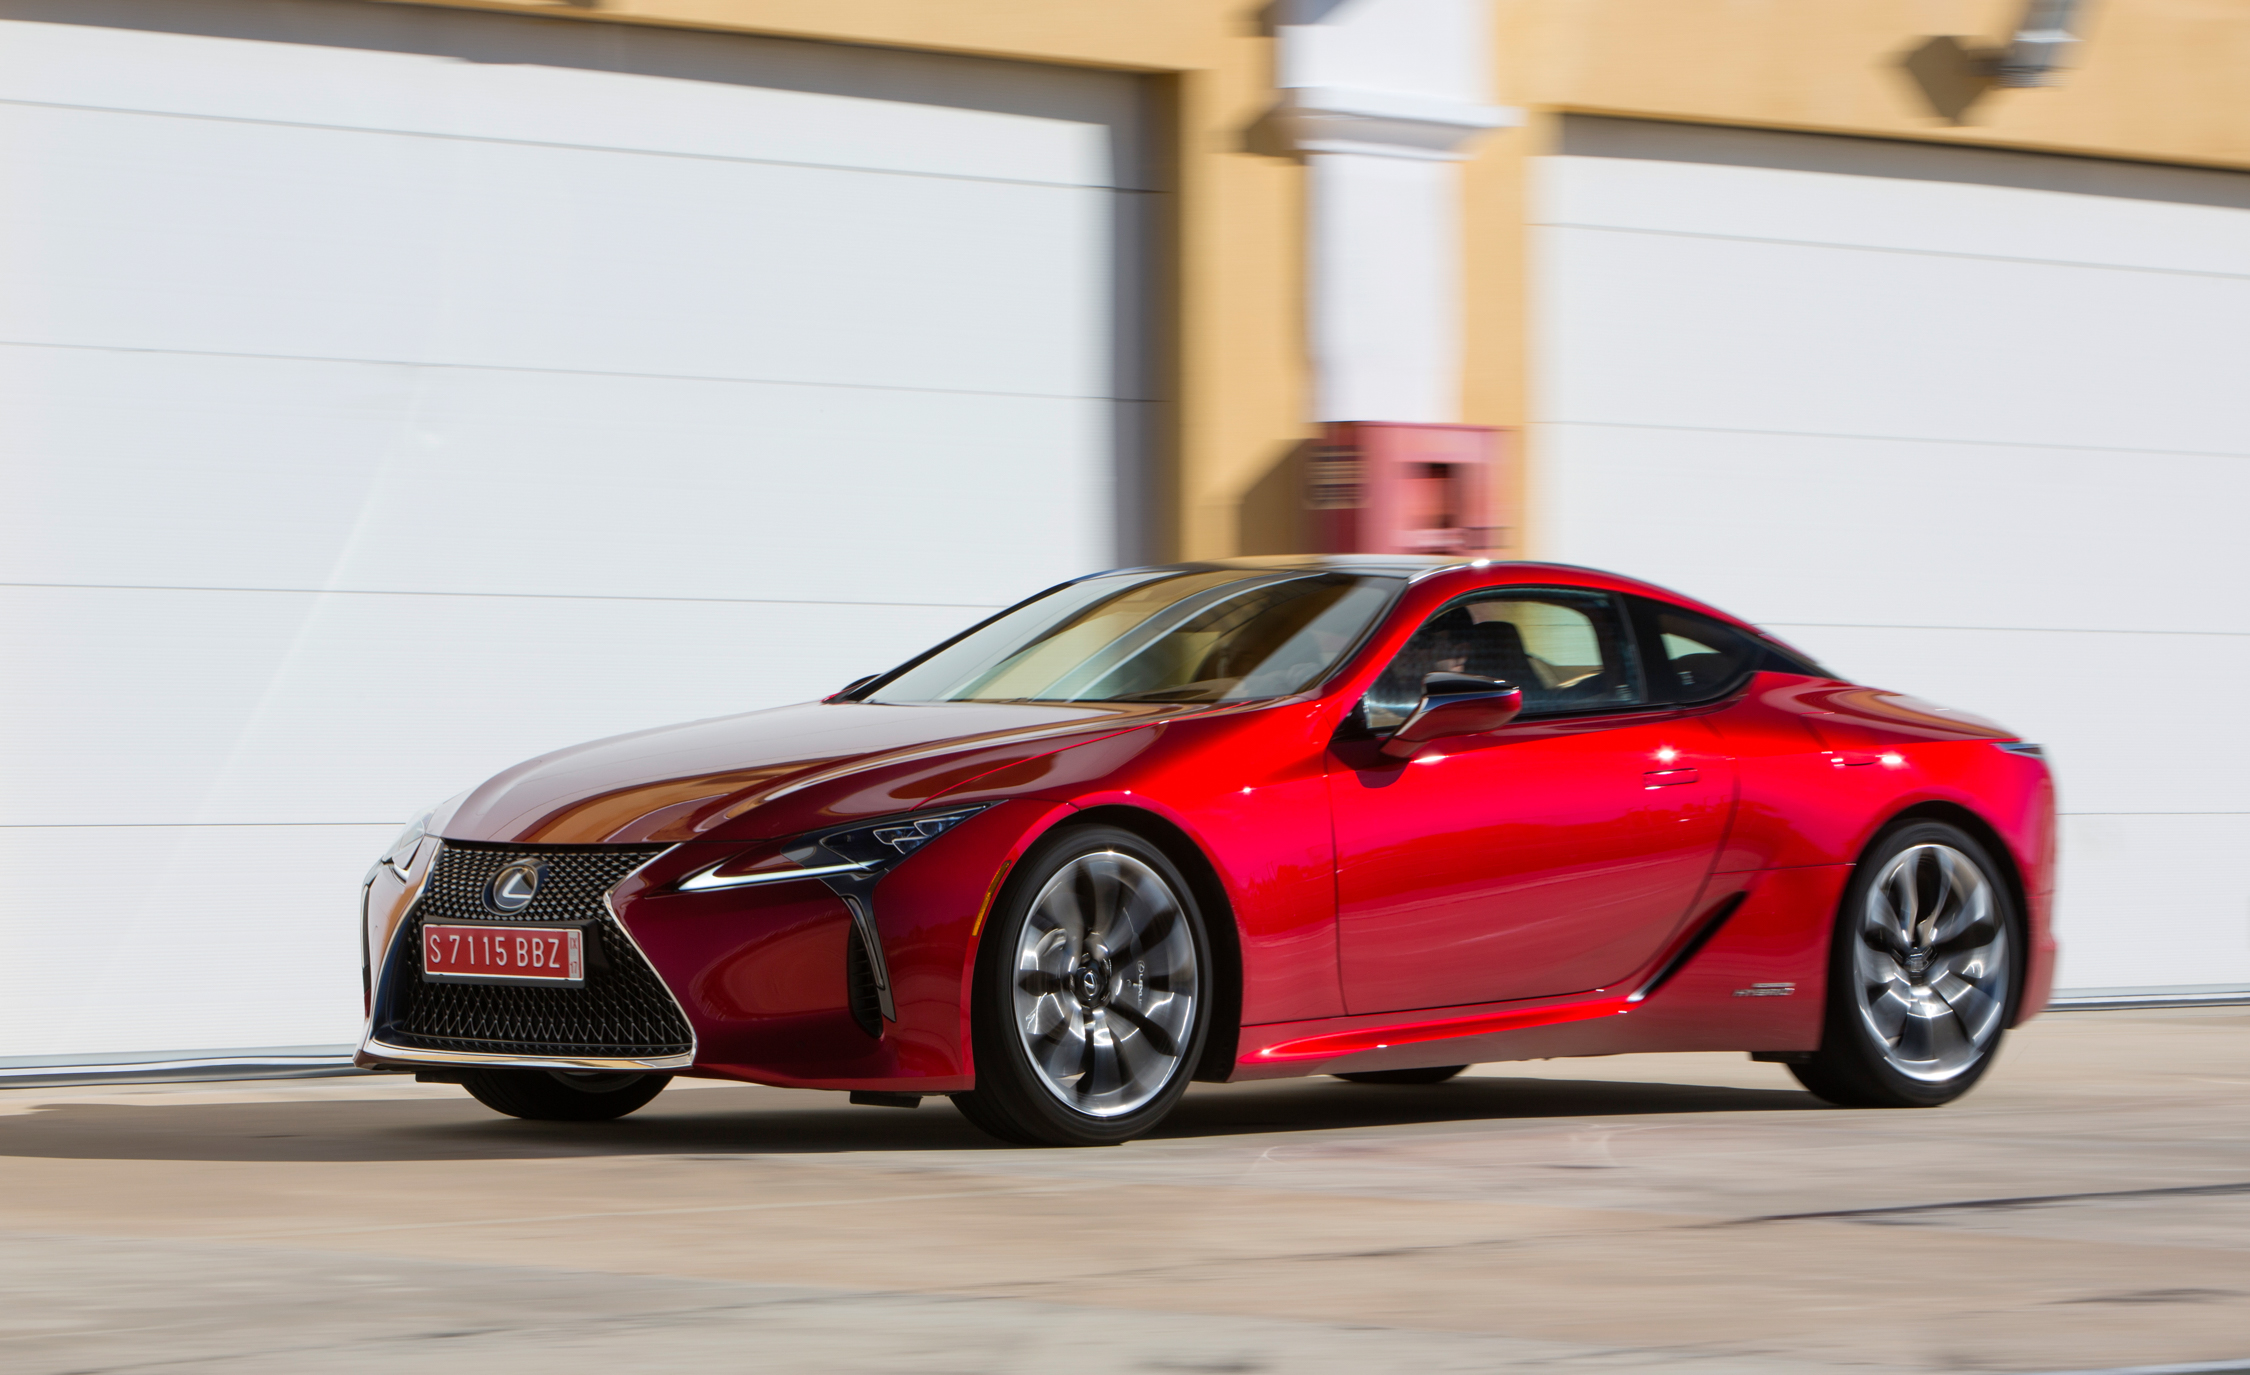 2018 Lexus Lc 500 Red (Photo 21 of 84)